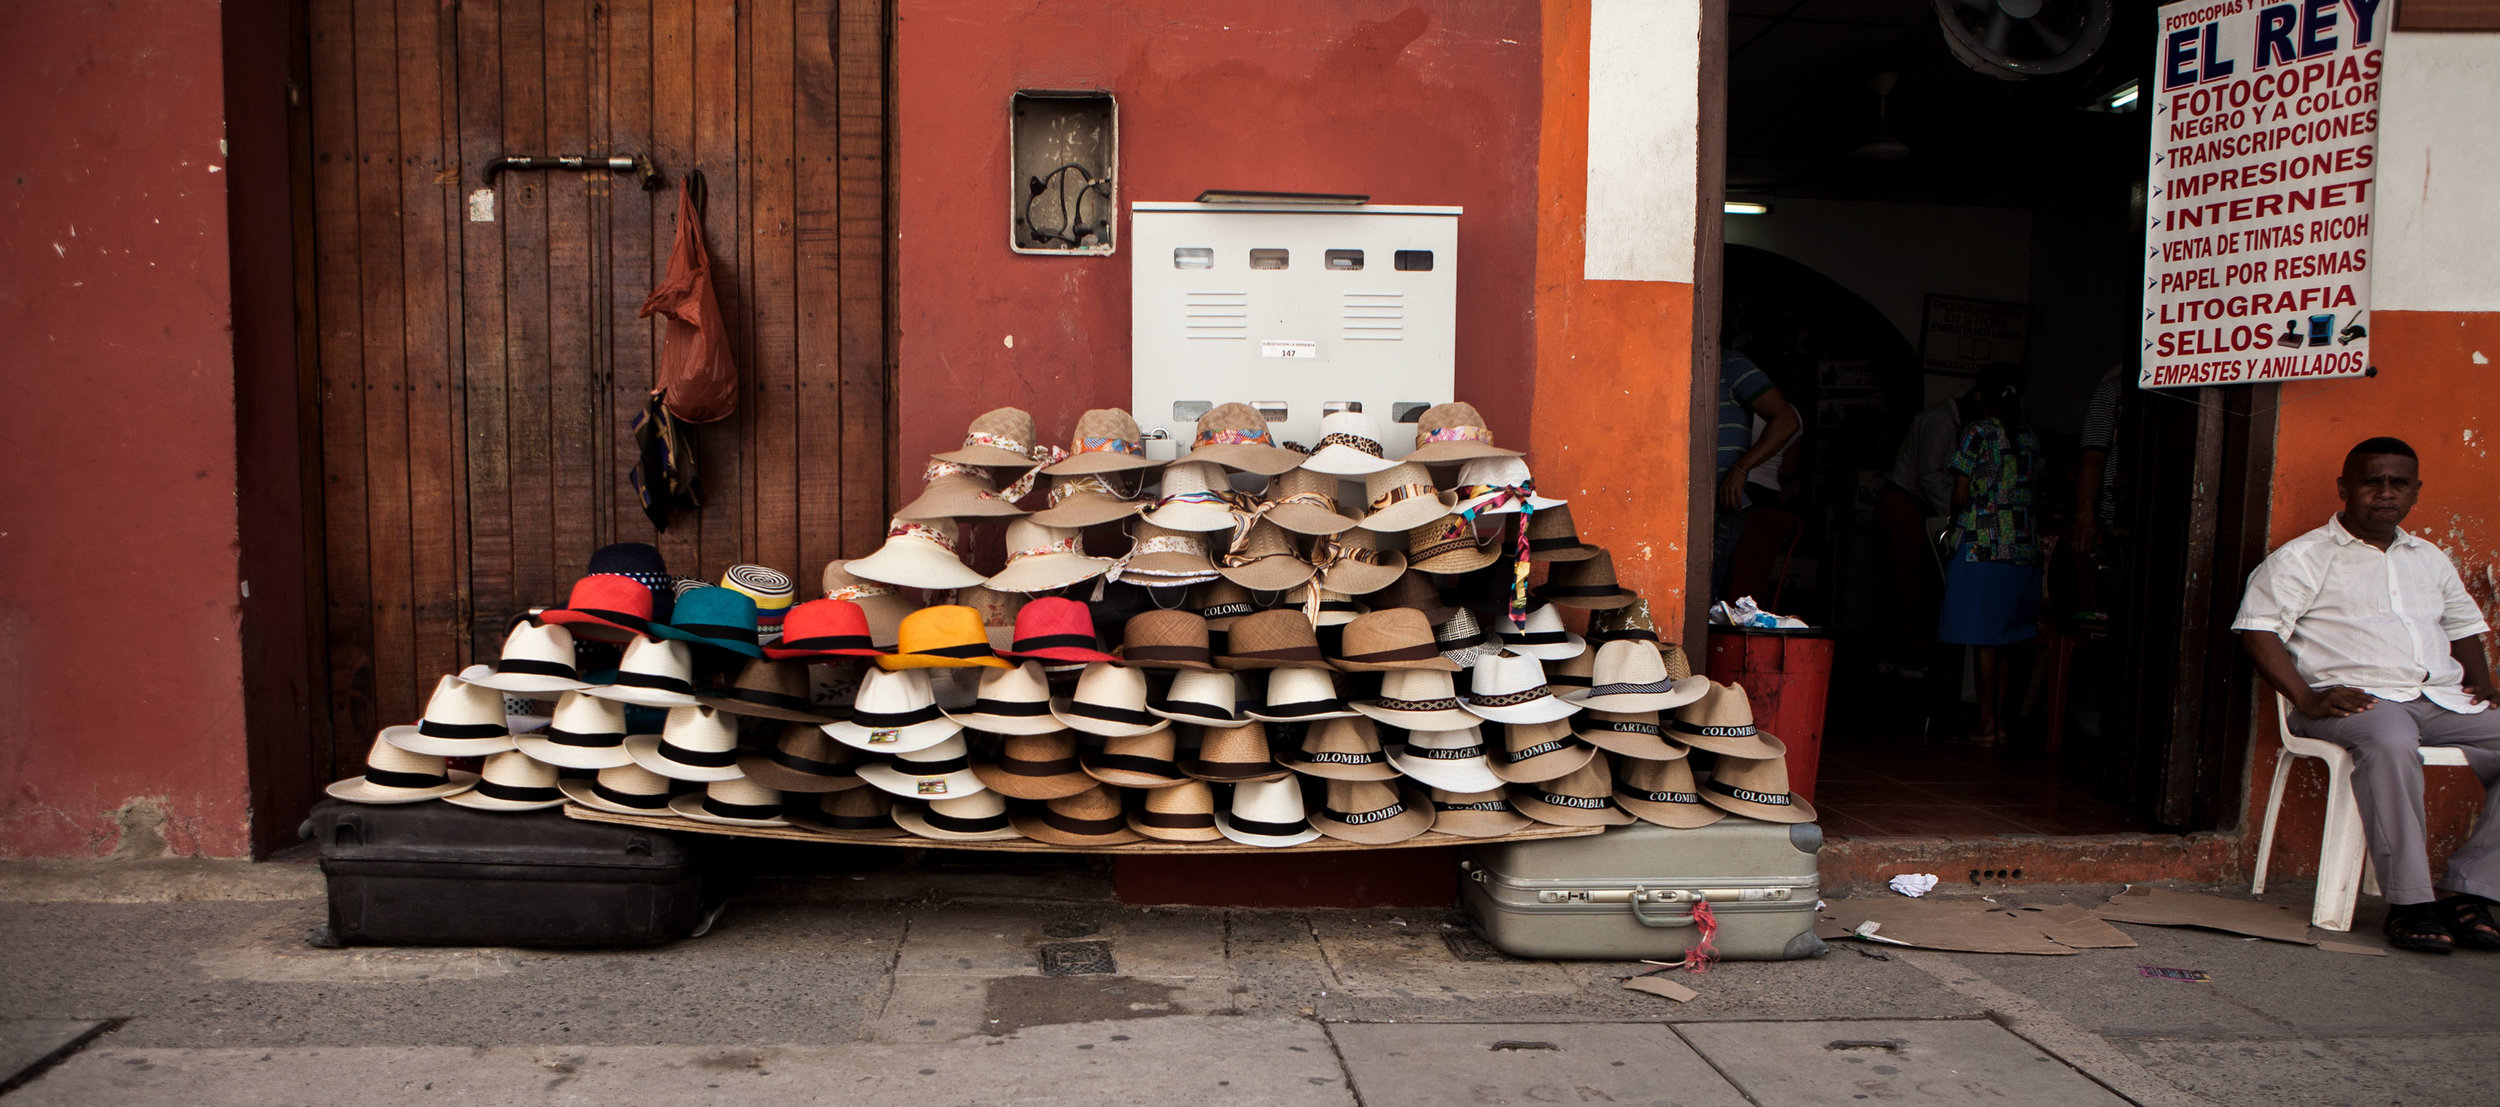 cartagena-colombia-wander-south-old-town-street-vendor-king-of-the-hats.jpg